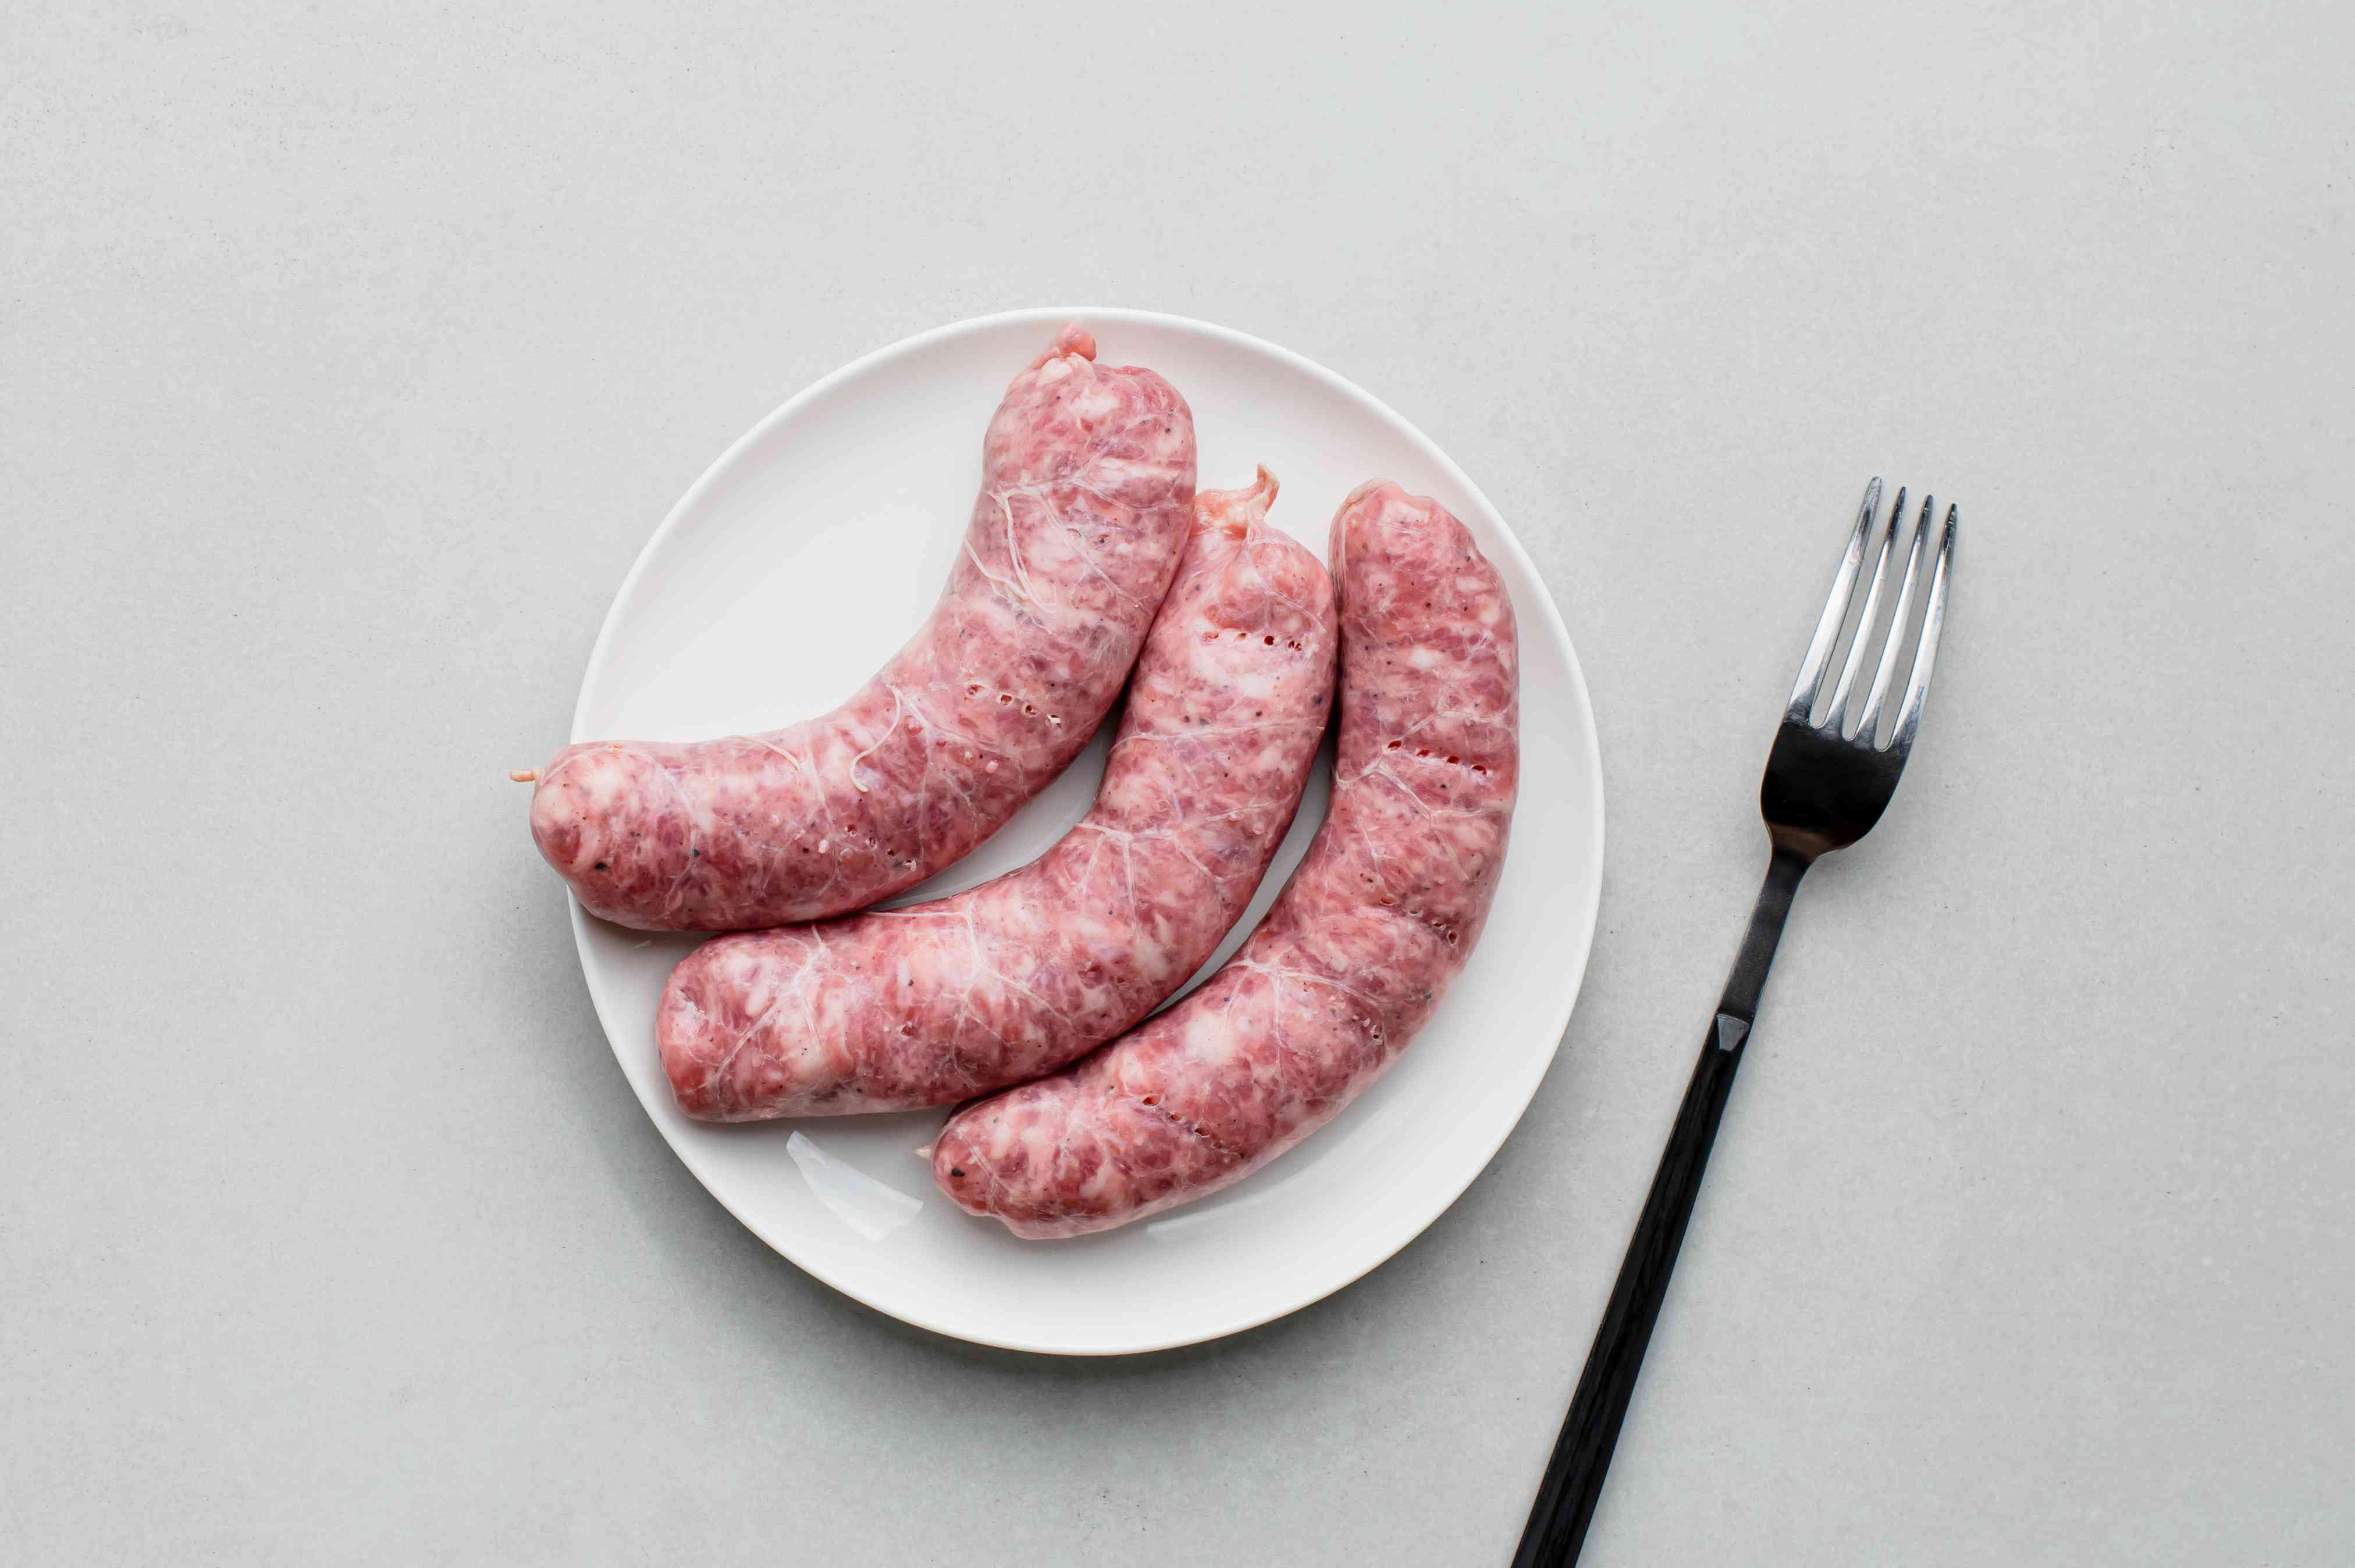 prick the sausage with a fork